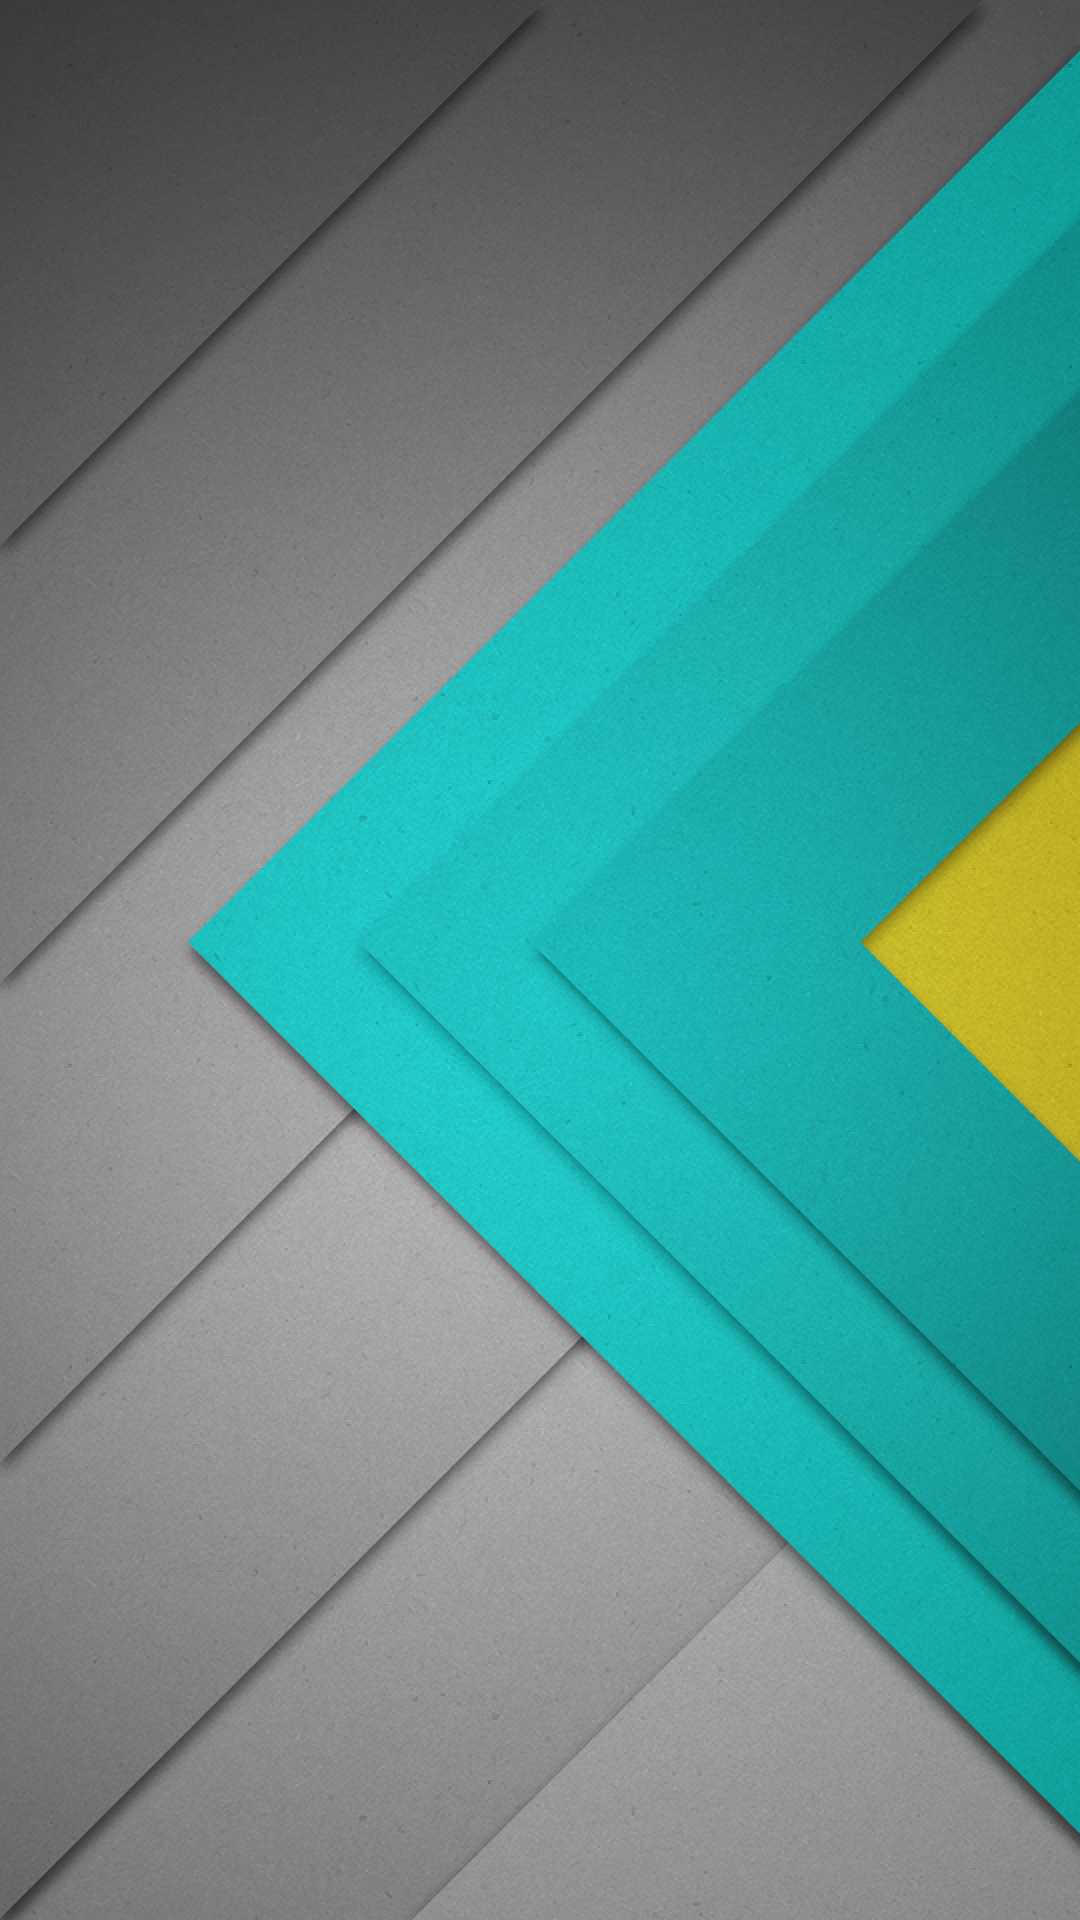 you wait get 16 high res Android Marshmallow inspired wallpapers 1080x1920